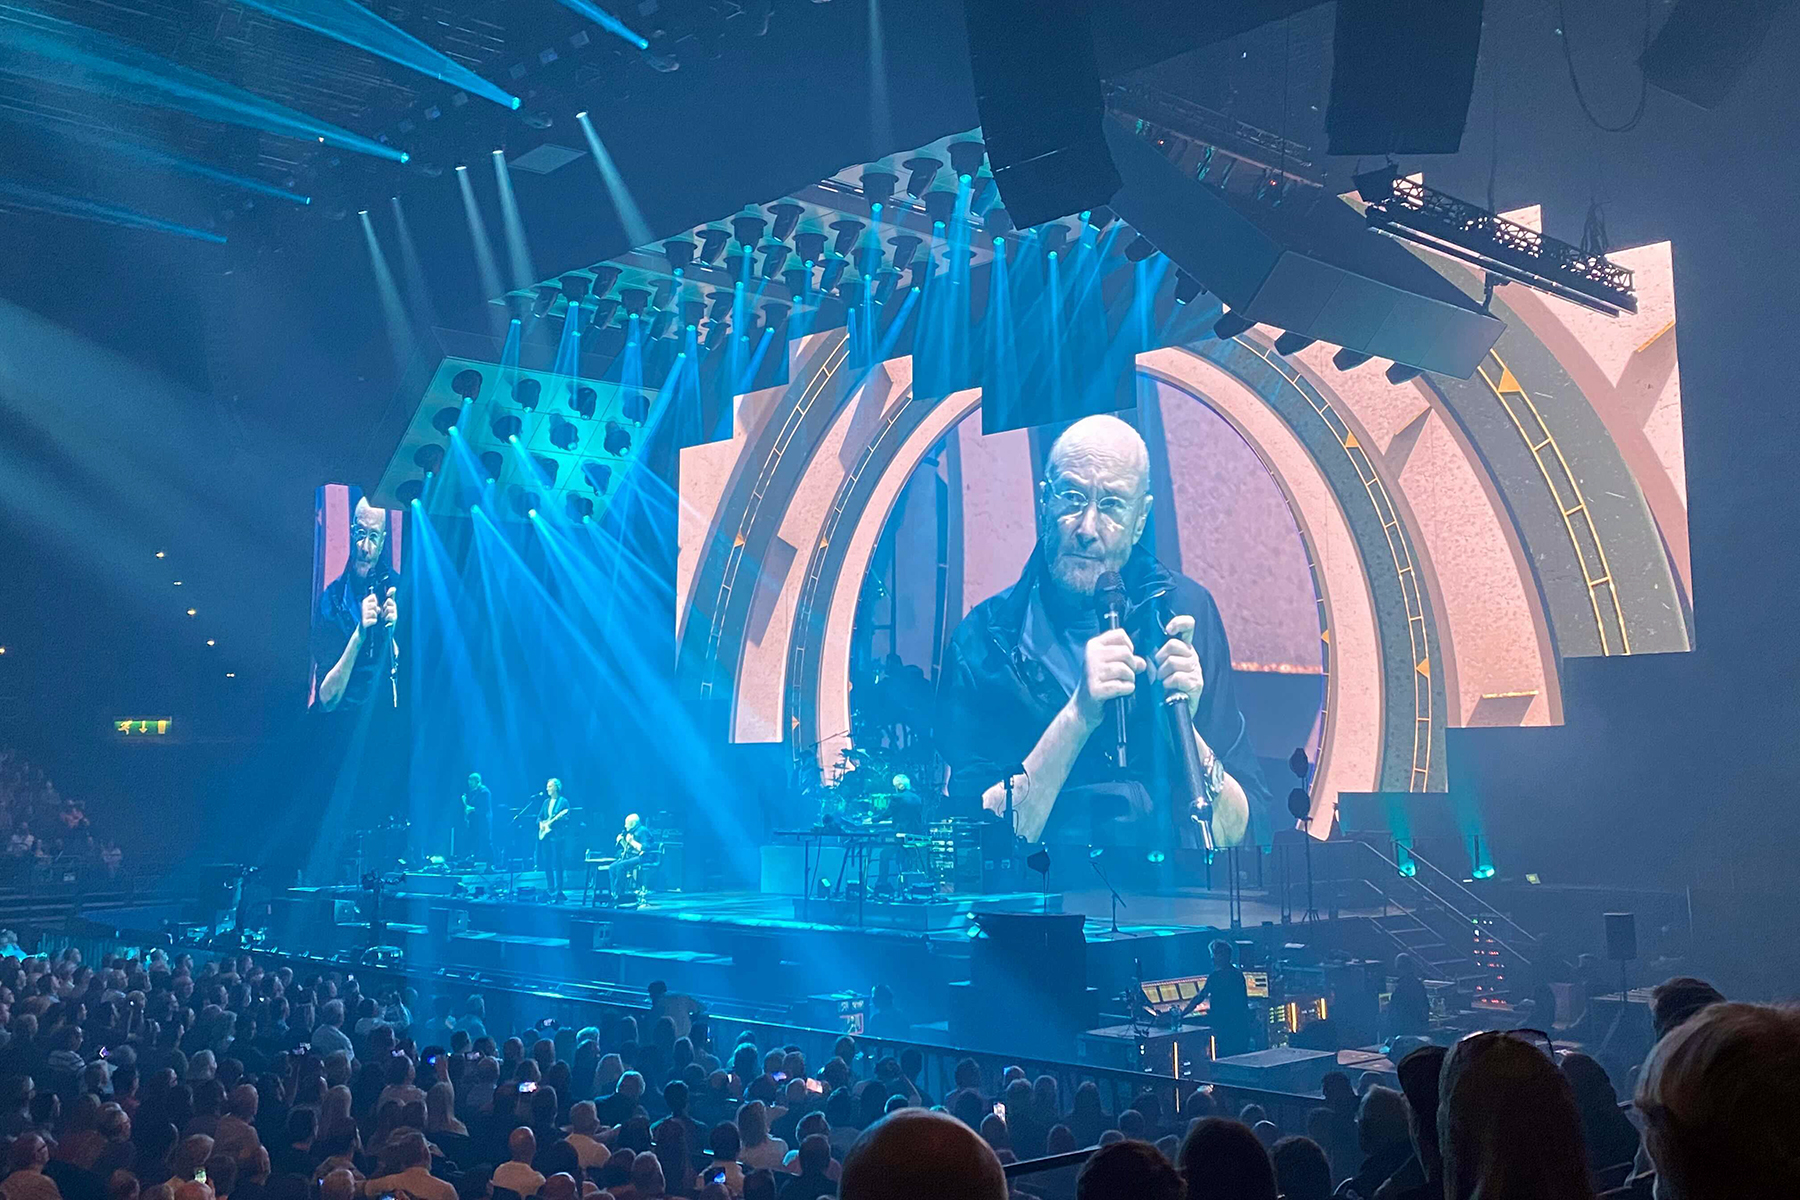 Genesis 'Turn It On Again' at Emotional Reunion Tour Launch in Birmingham - Rolling Stone